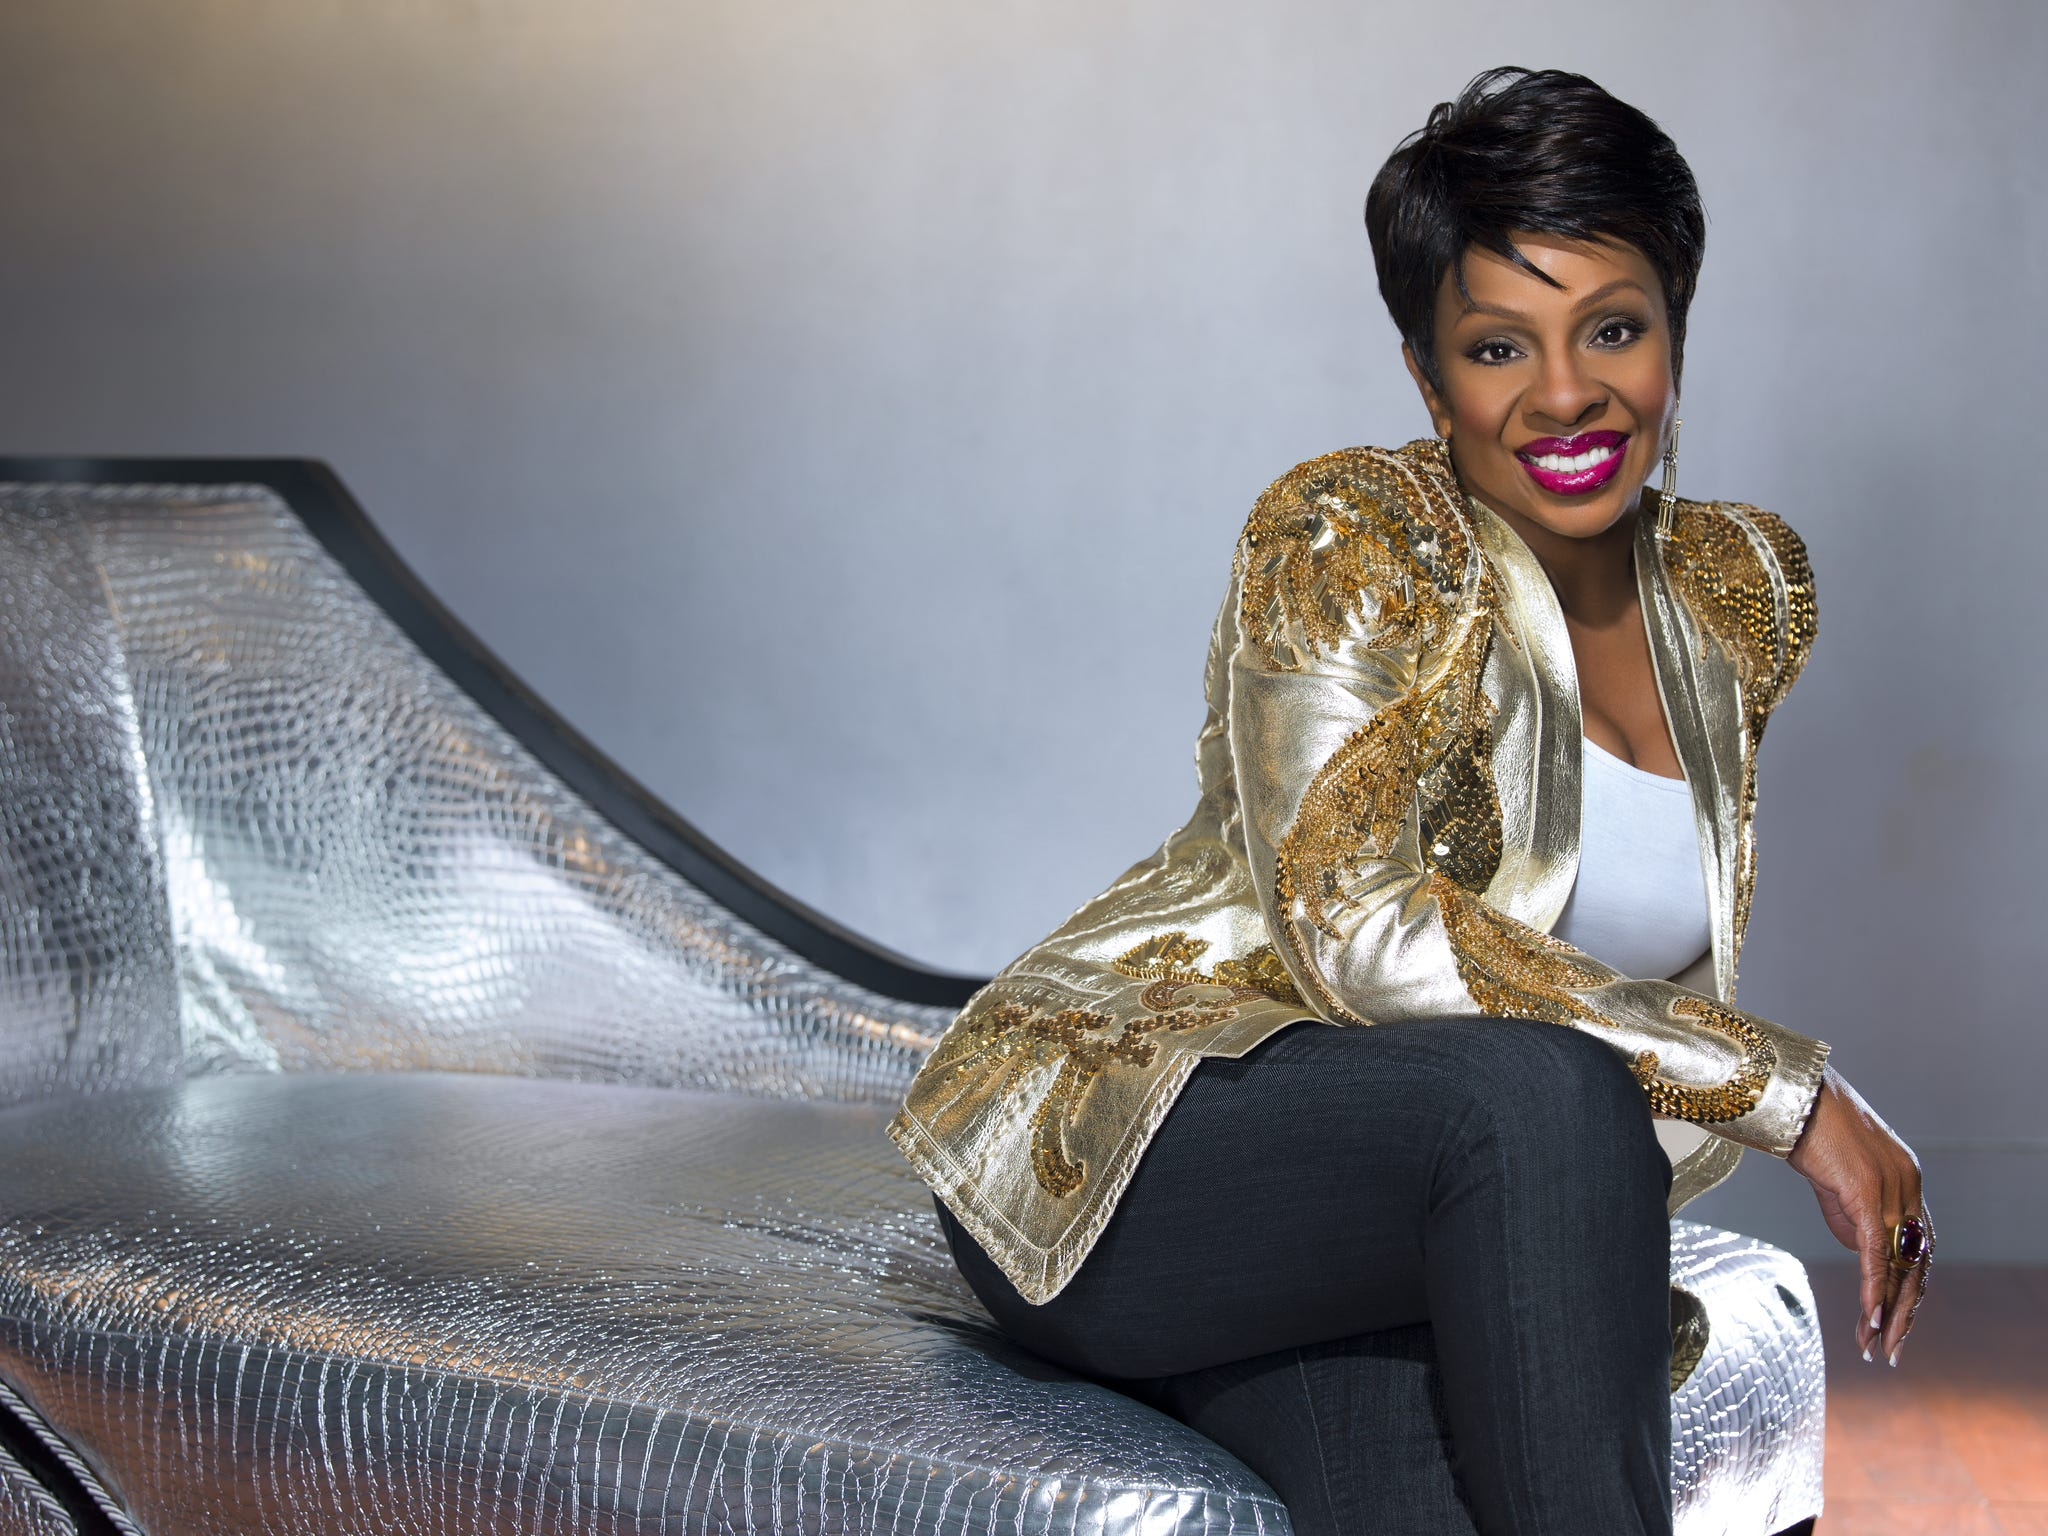 New date is set for Gladys Knight s concert at Hoyt Sherman Place